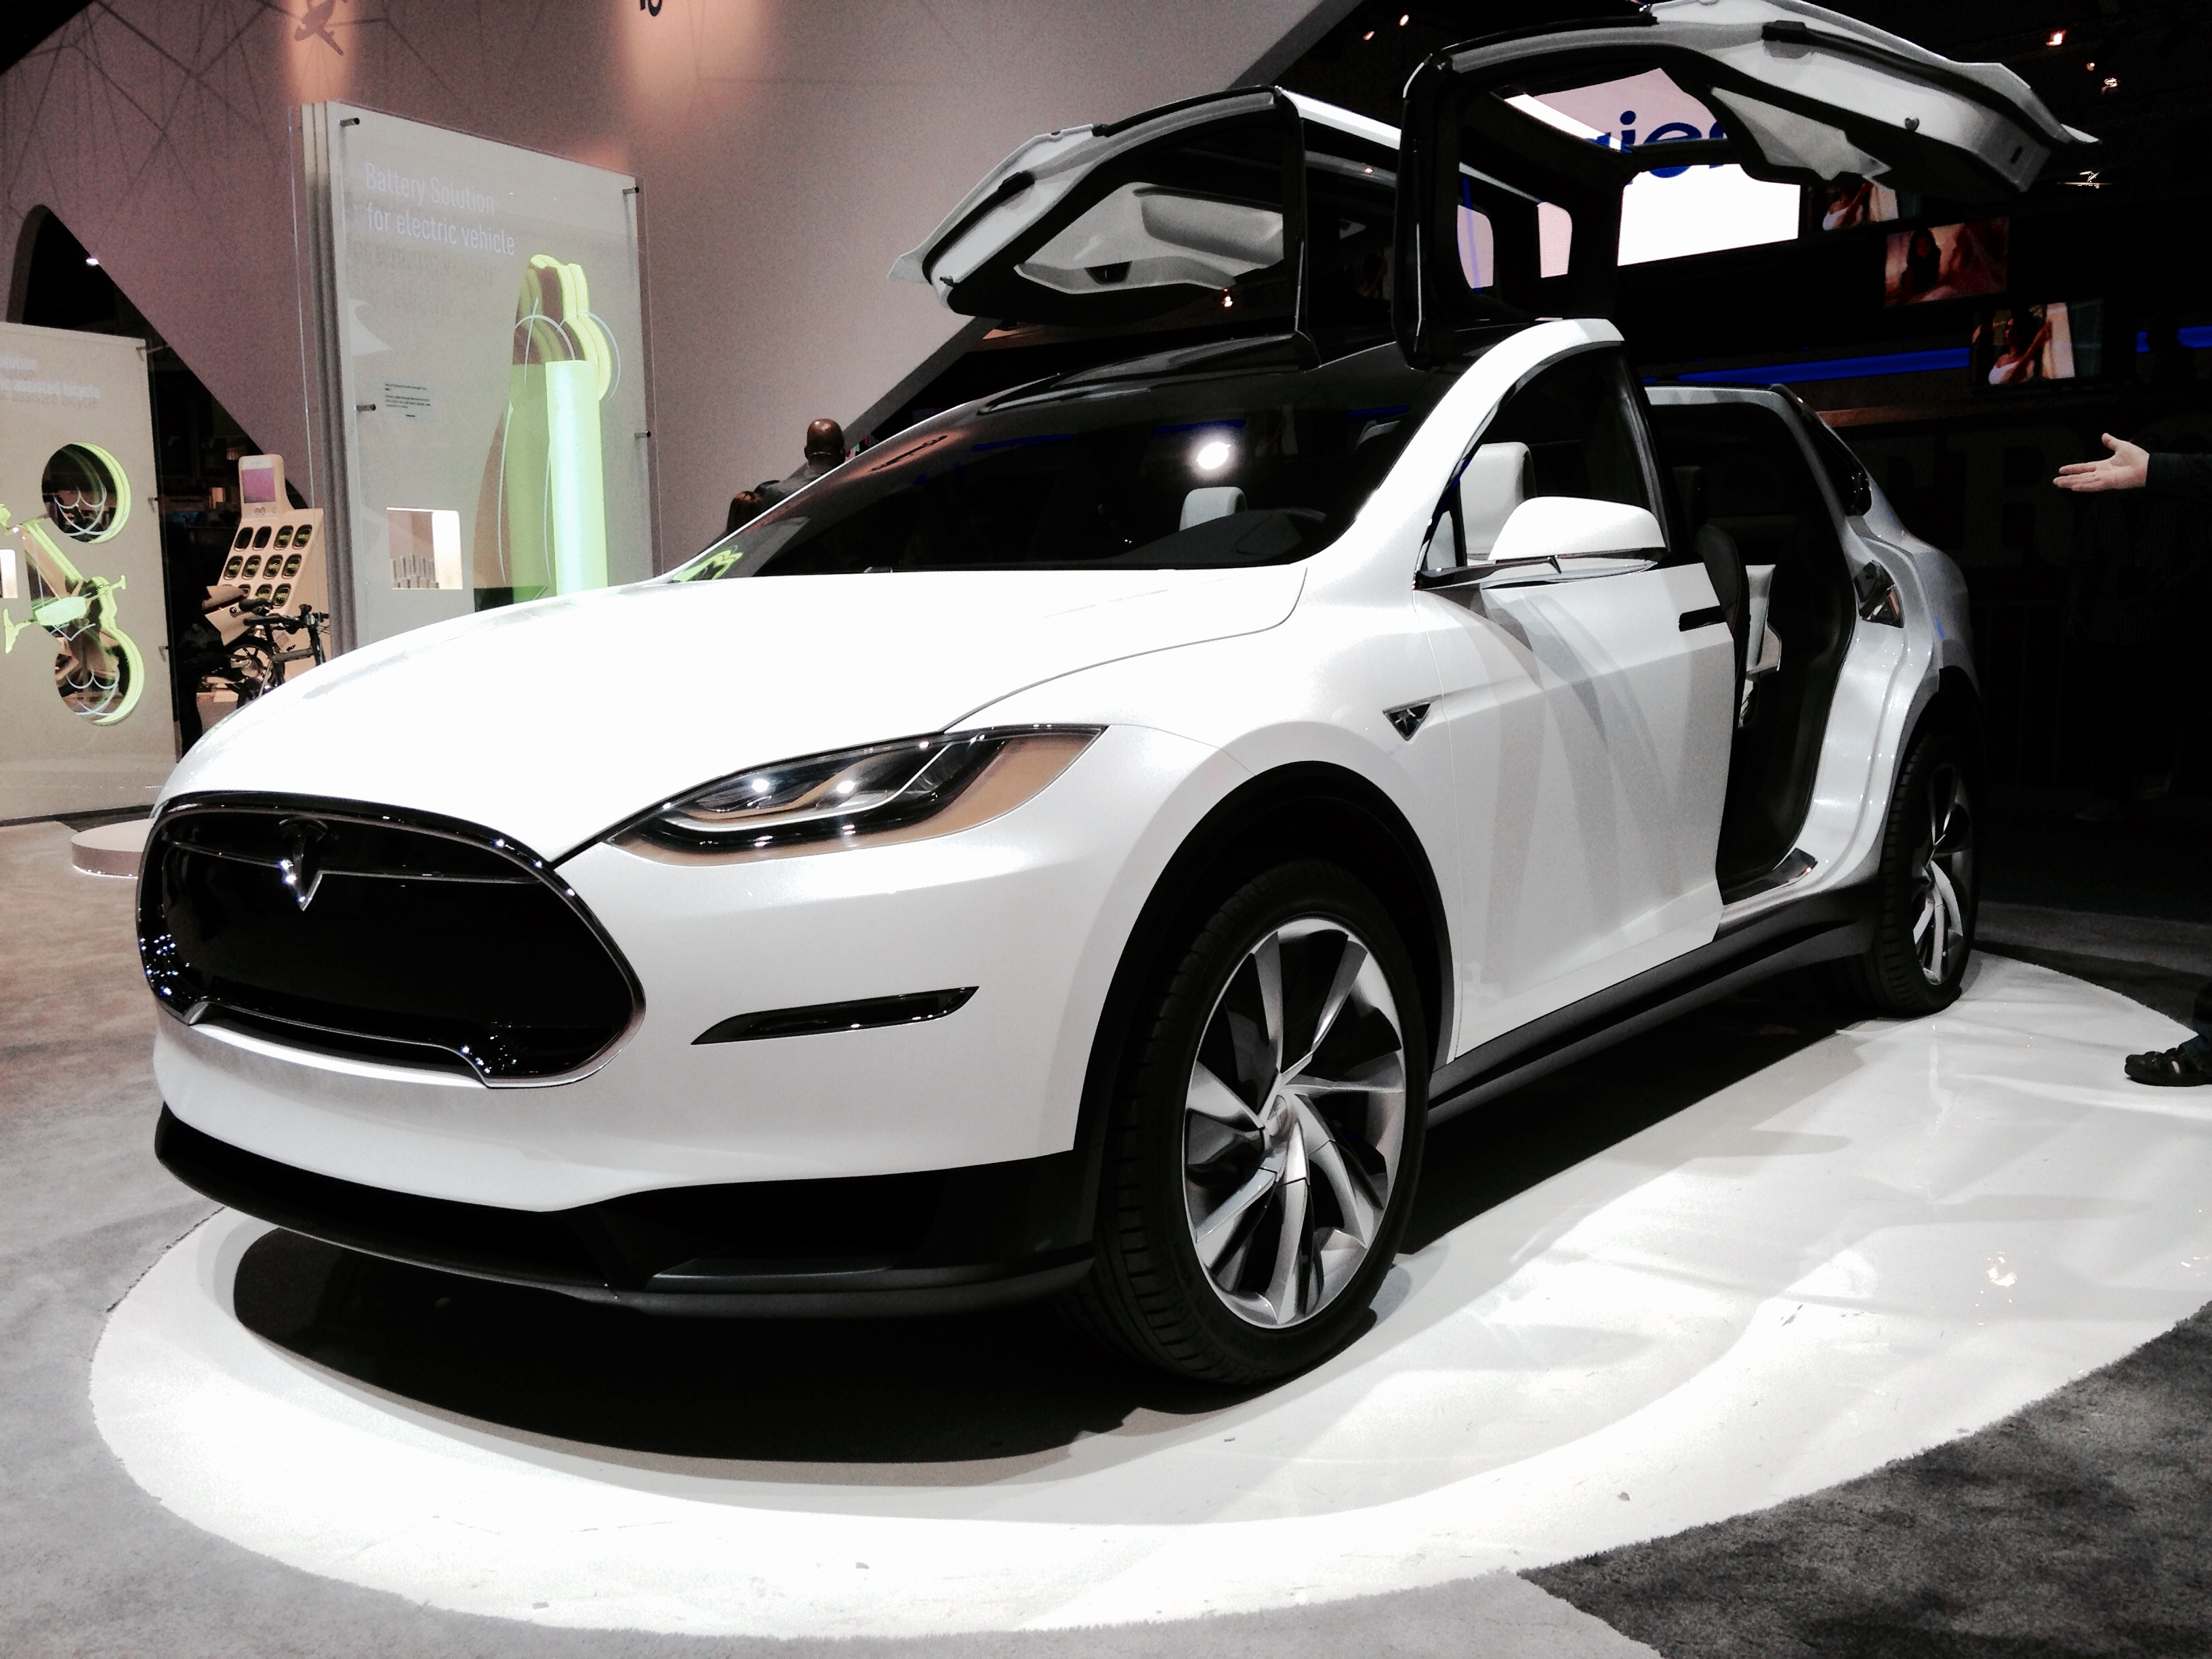 file tesla model x front view 16042113157 jpg wikimedia commons. Black Bedroom Furniture Sets. Home Design Ideas